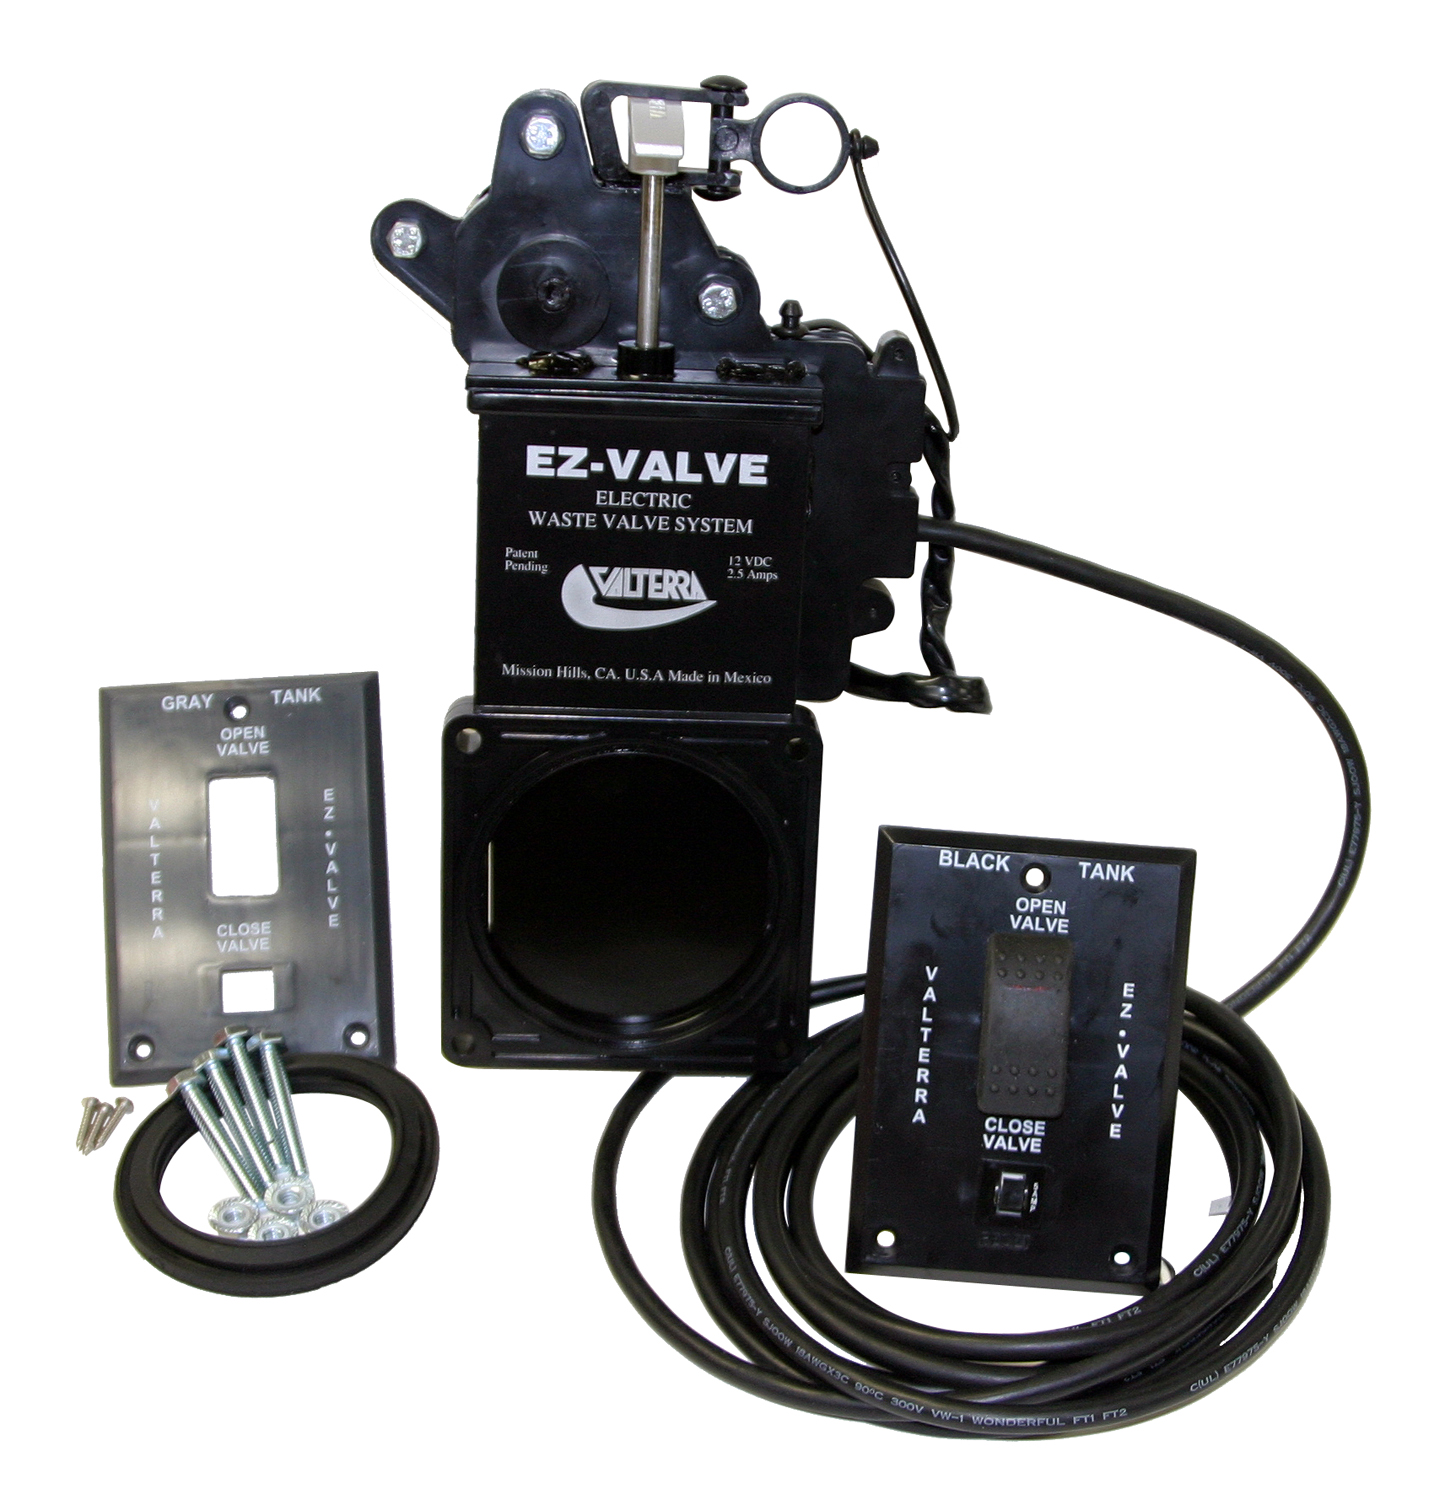 E1003VP Valterra Sewer Waste Valve Waste Valve For RV Black Water